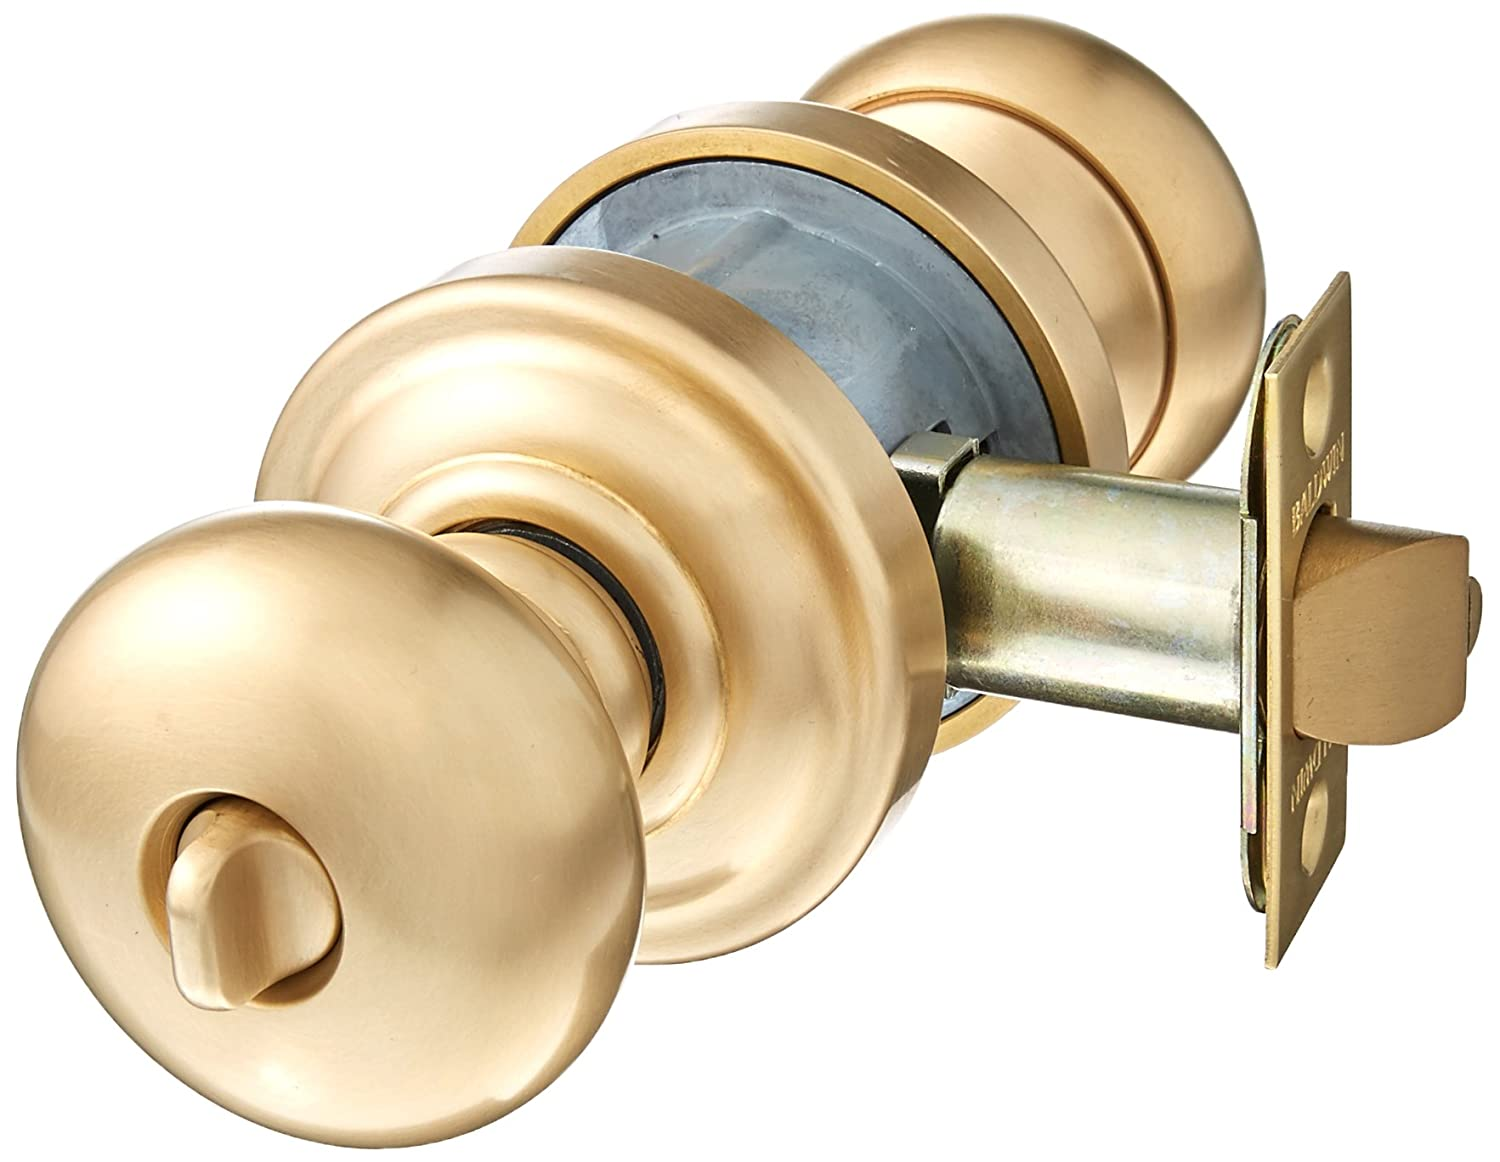 Baldwin 5205.ENTR Classic Style Keyed Entry Door Knob Set with Classic Rosette t, Vintage Brass - Doorknobs - Amazon.com